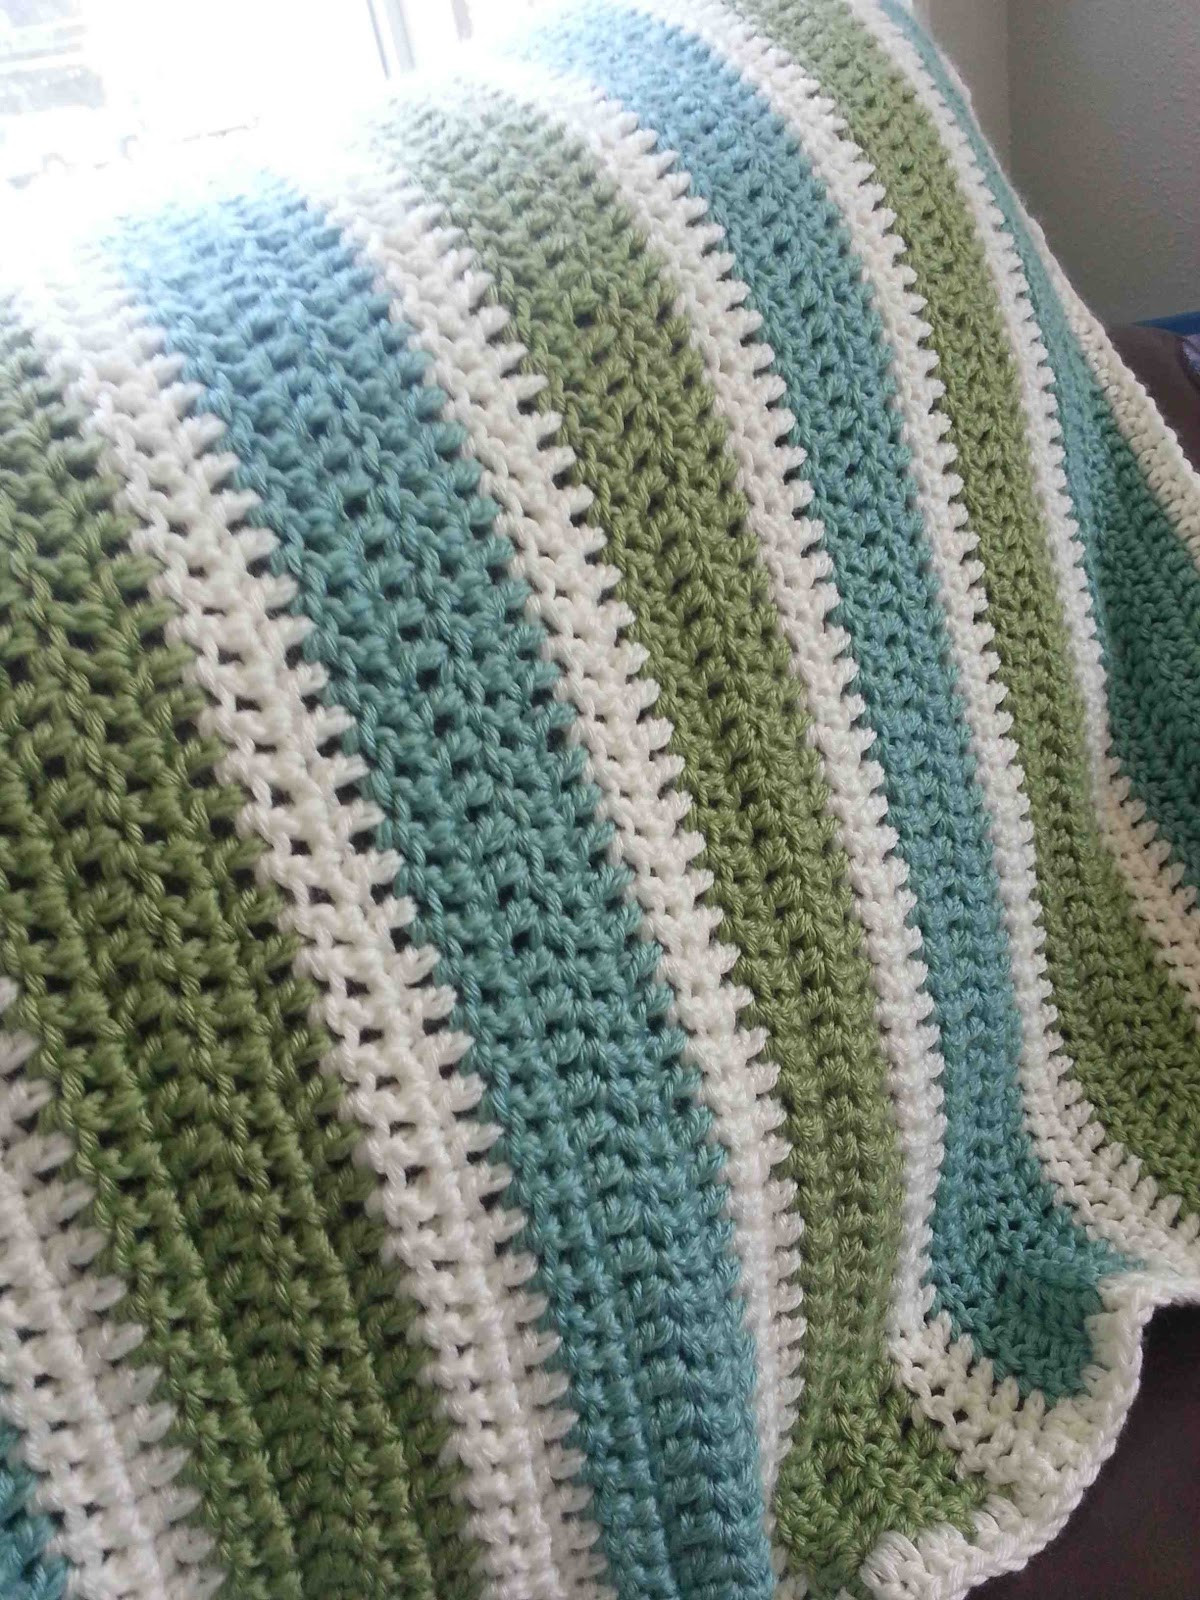 Afghan Blanket Crochet Awesome Made by Me D with You Striped Crochet Afghan Of Marvelous 48 Ideas Afghan Blanket Crochet